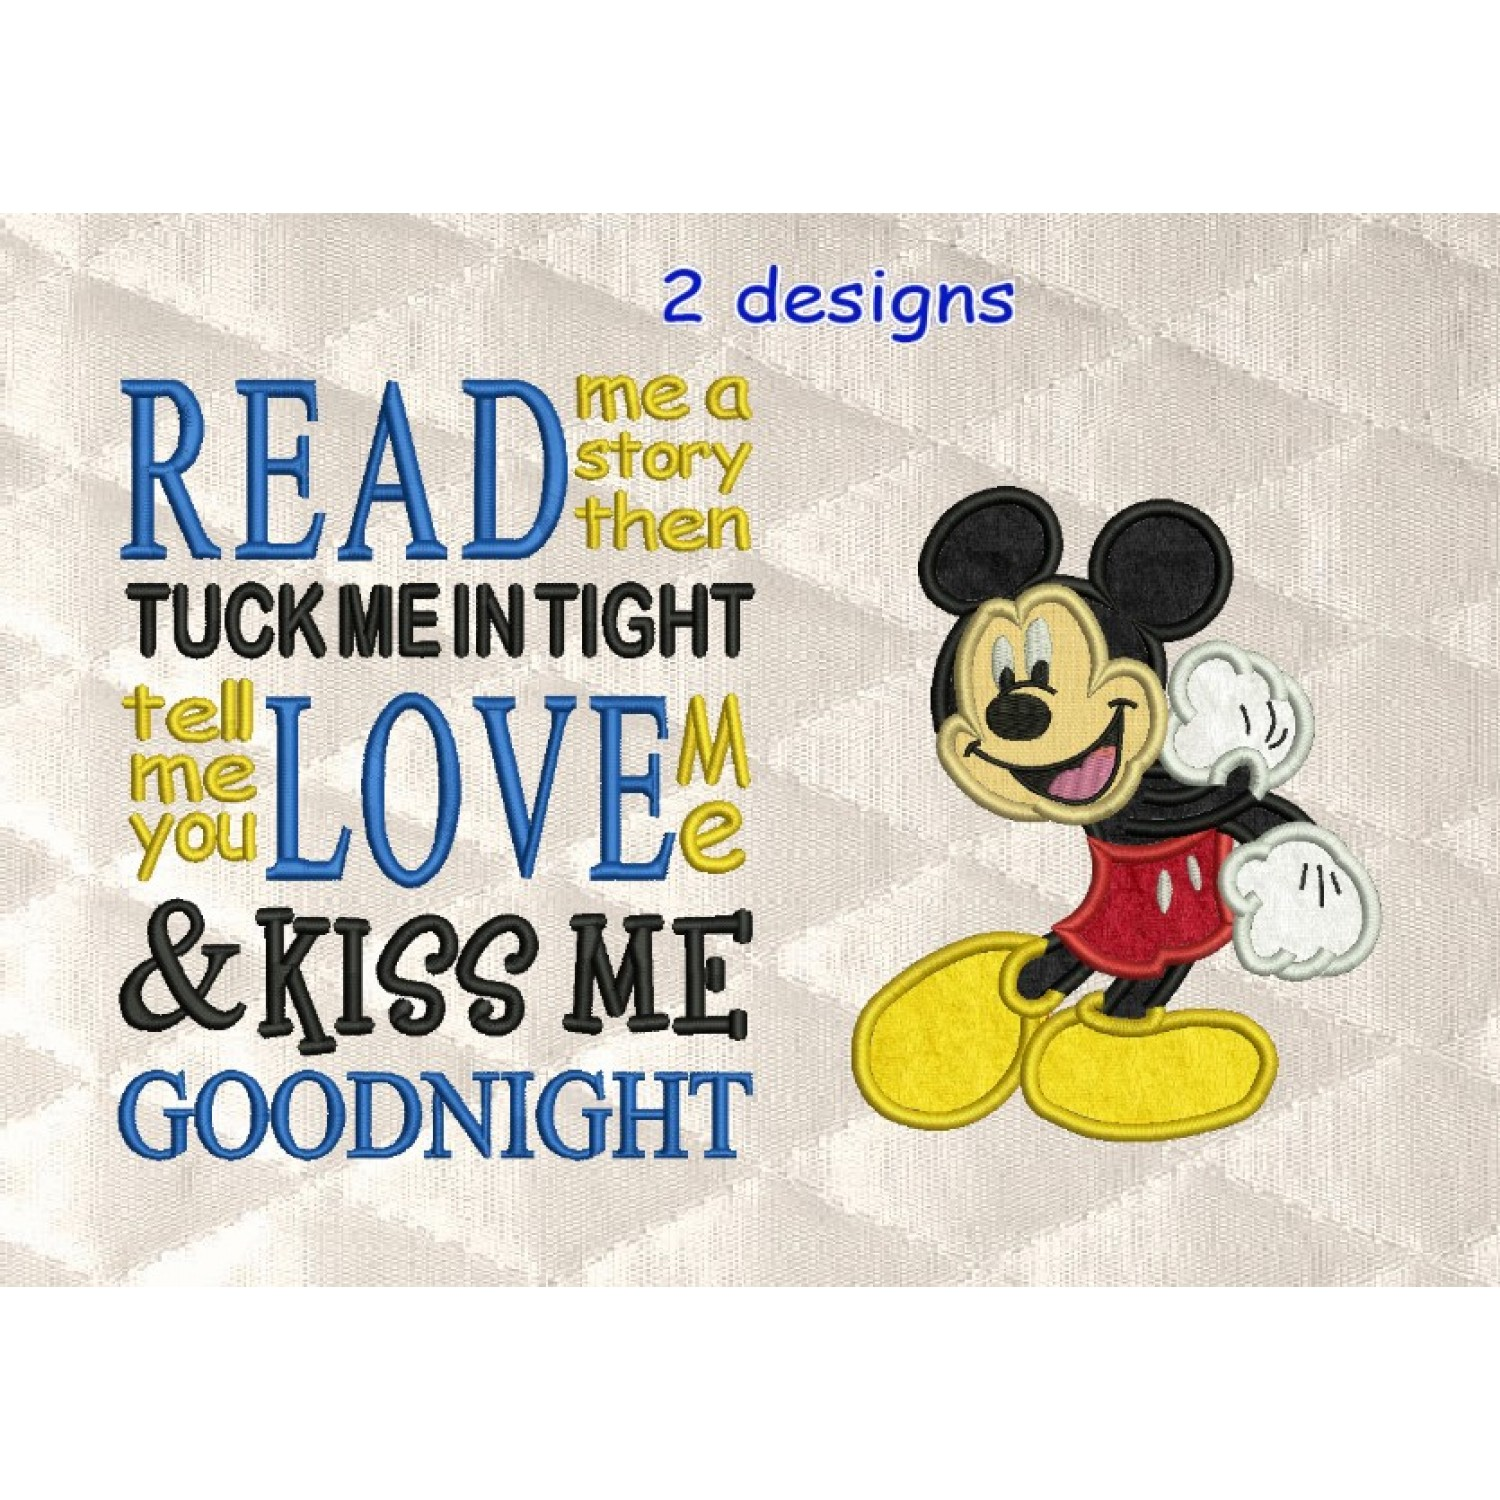 Mickey Mouse with read me a story designs